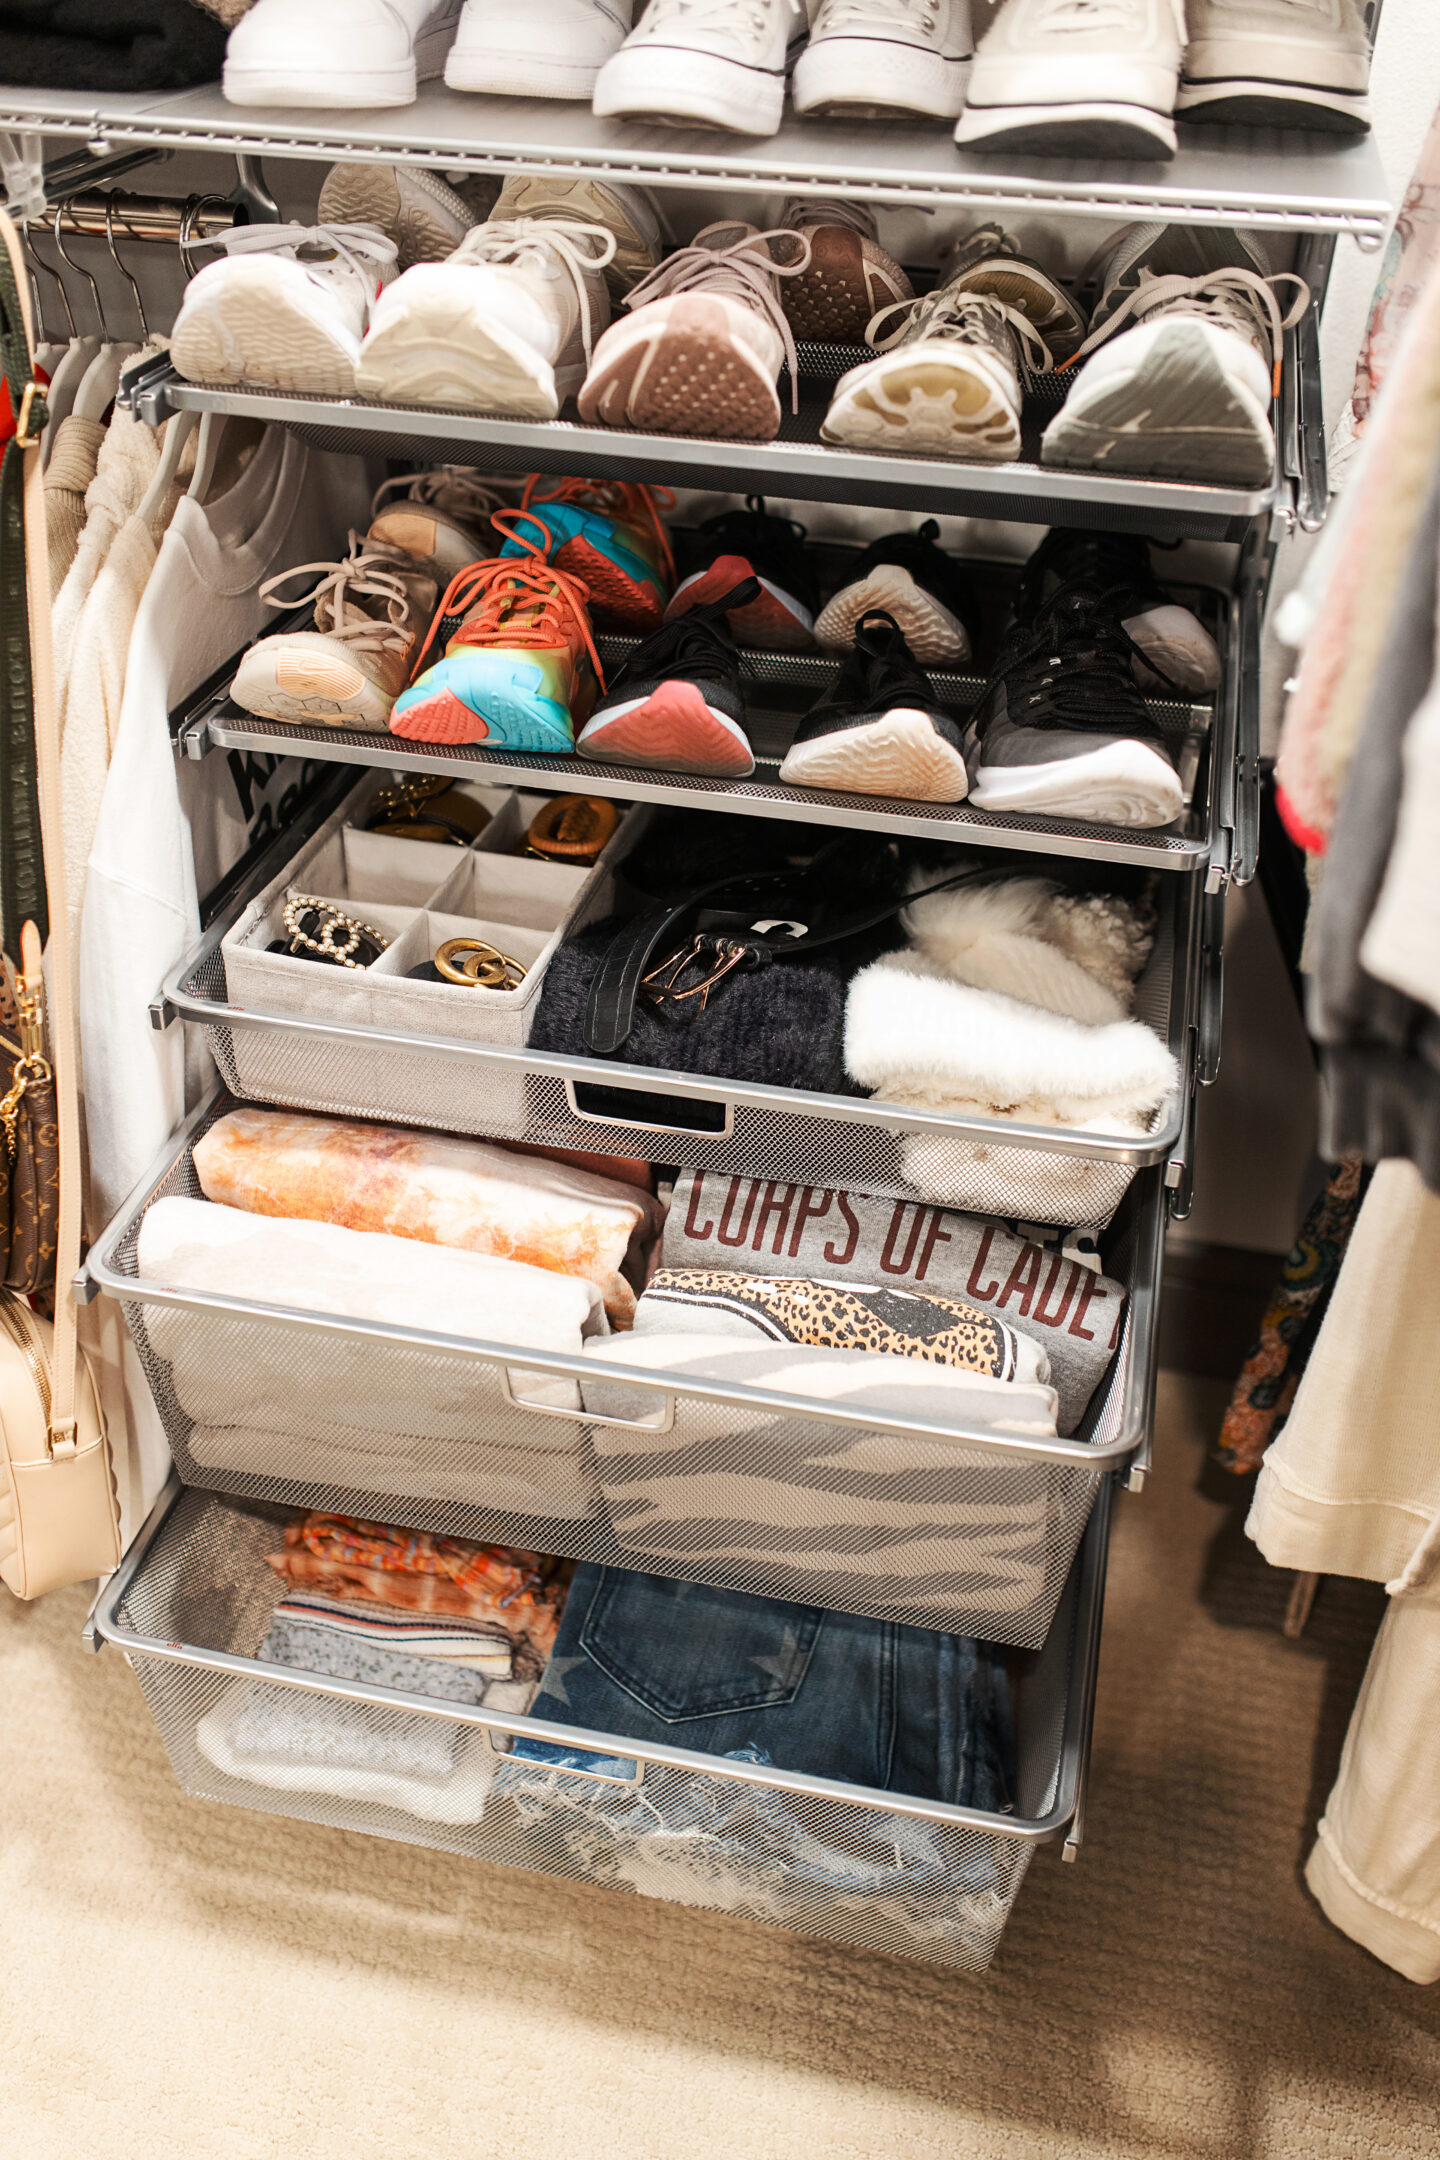 organizing, decluttering, organization, tips for organizing, closet organization, small space hacks, small space tips, organization products, apartment living, apartment hacks, closet organization ideas, closet designs, closet organization ideas small, storage solutions, small spaces